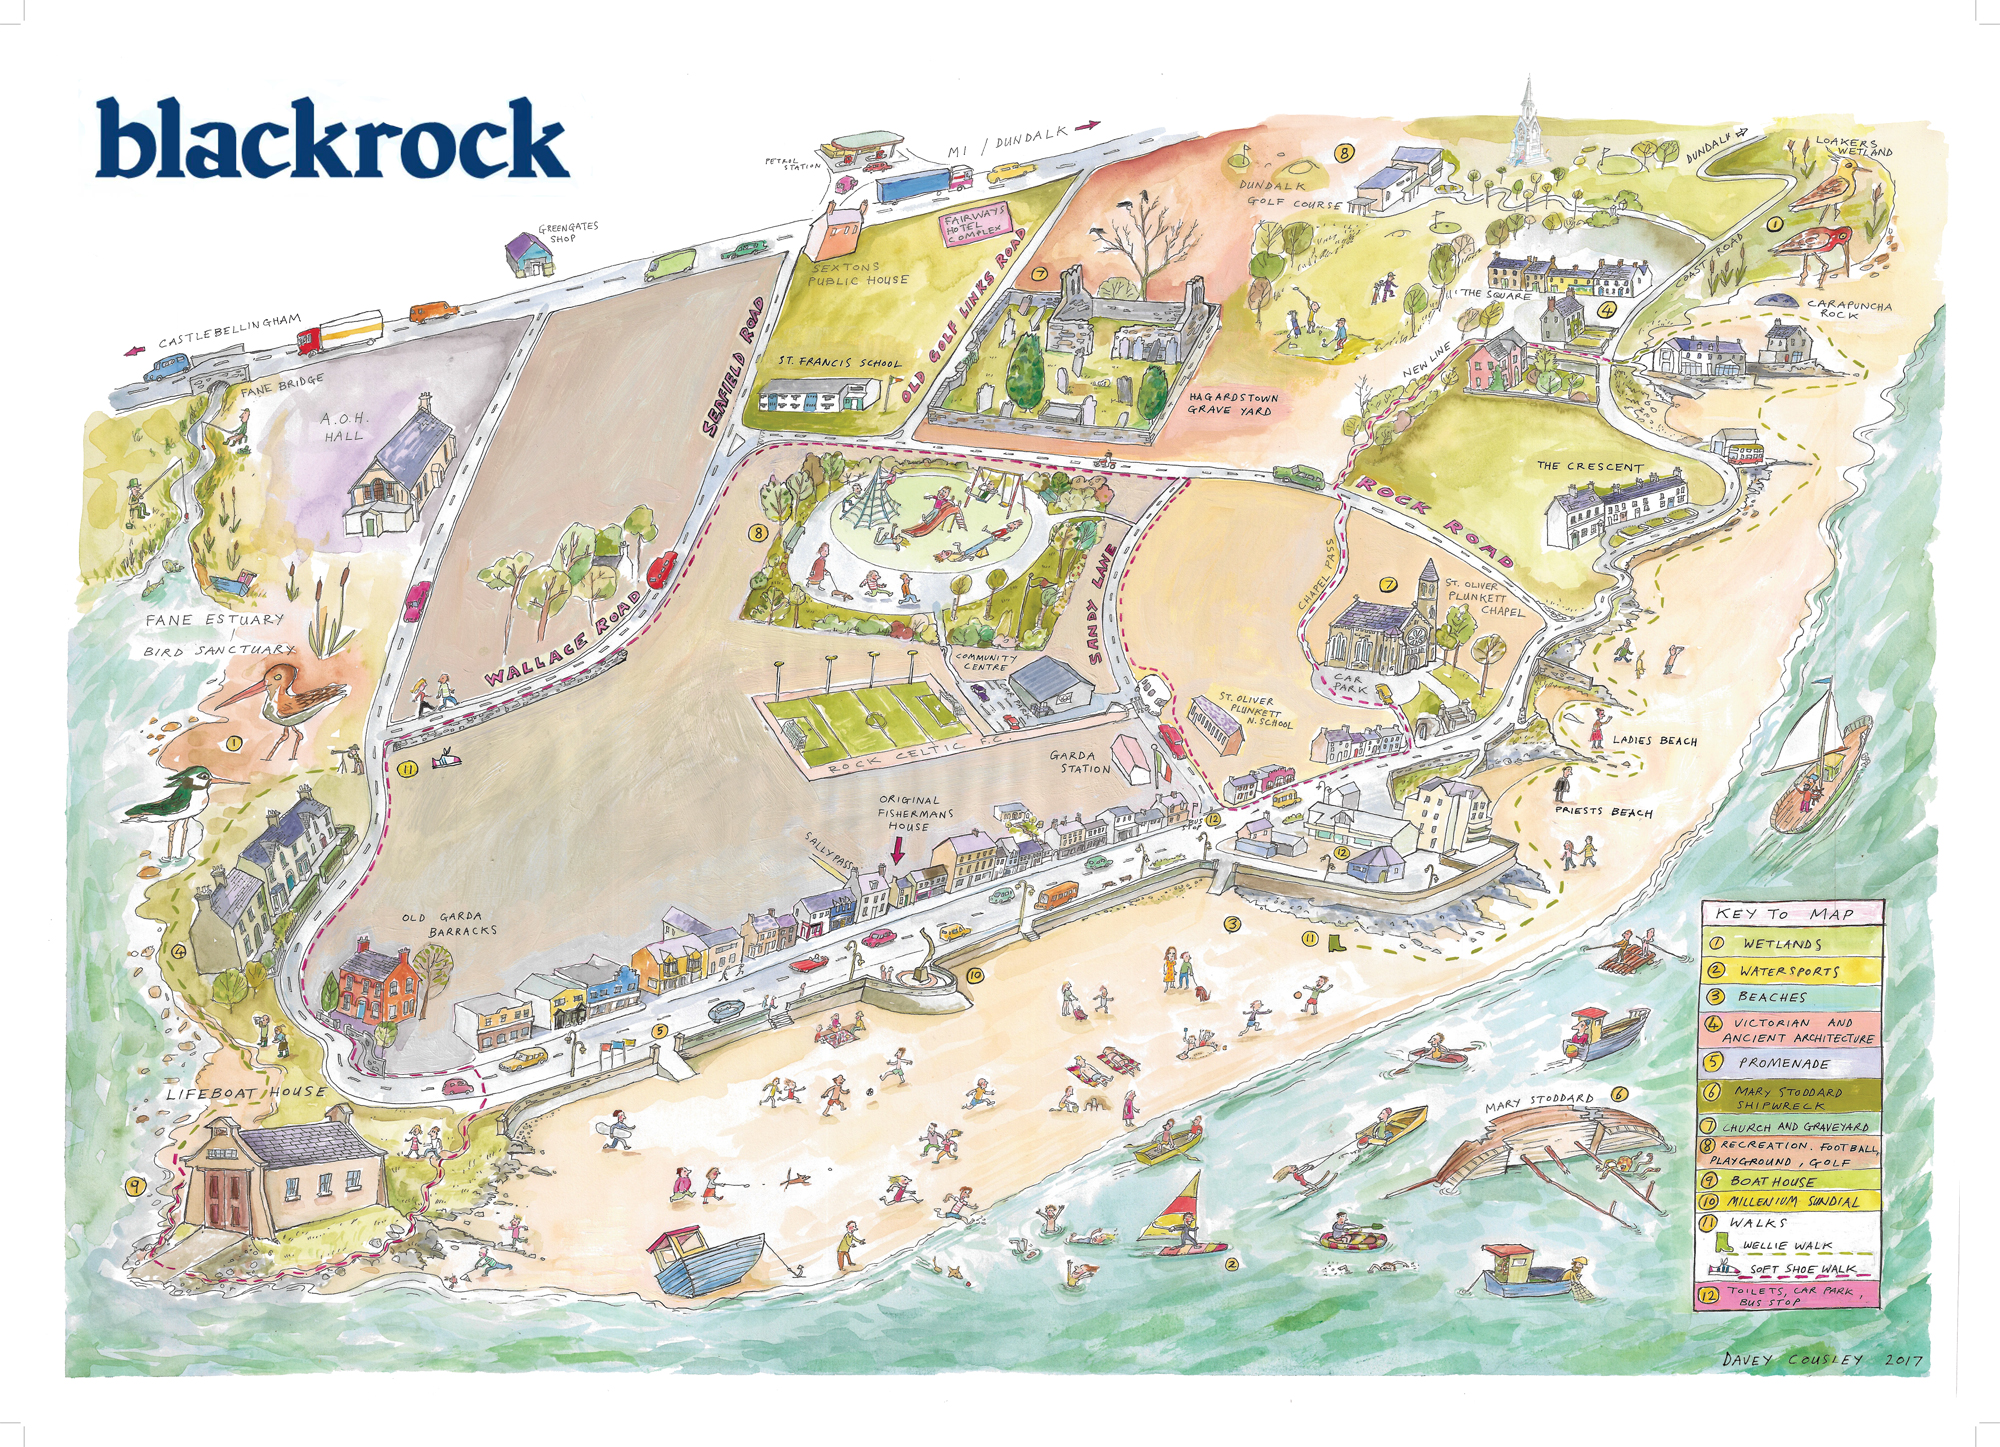 The New Blackrock Tourism and Development - Brand | Visit ...